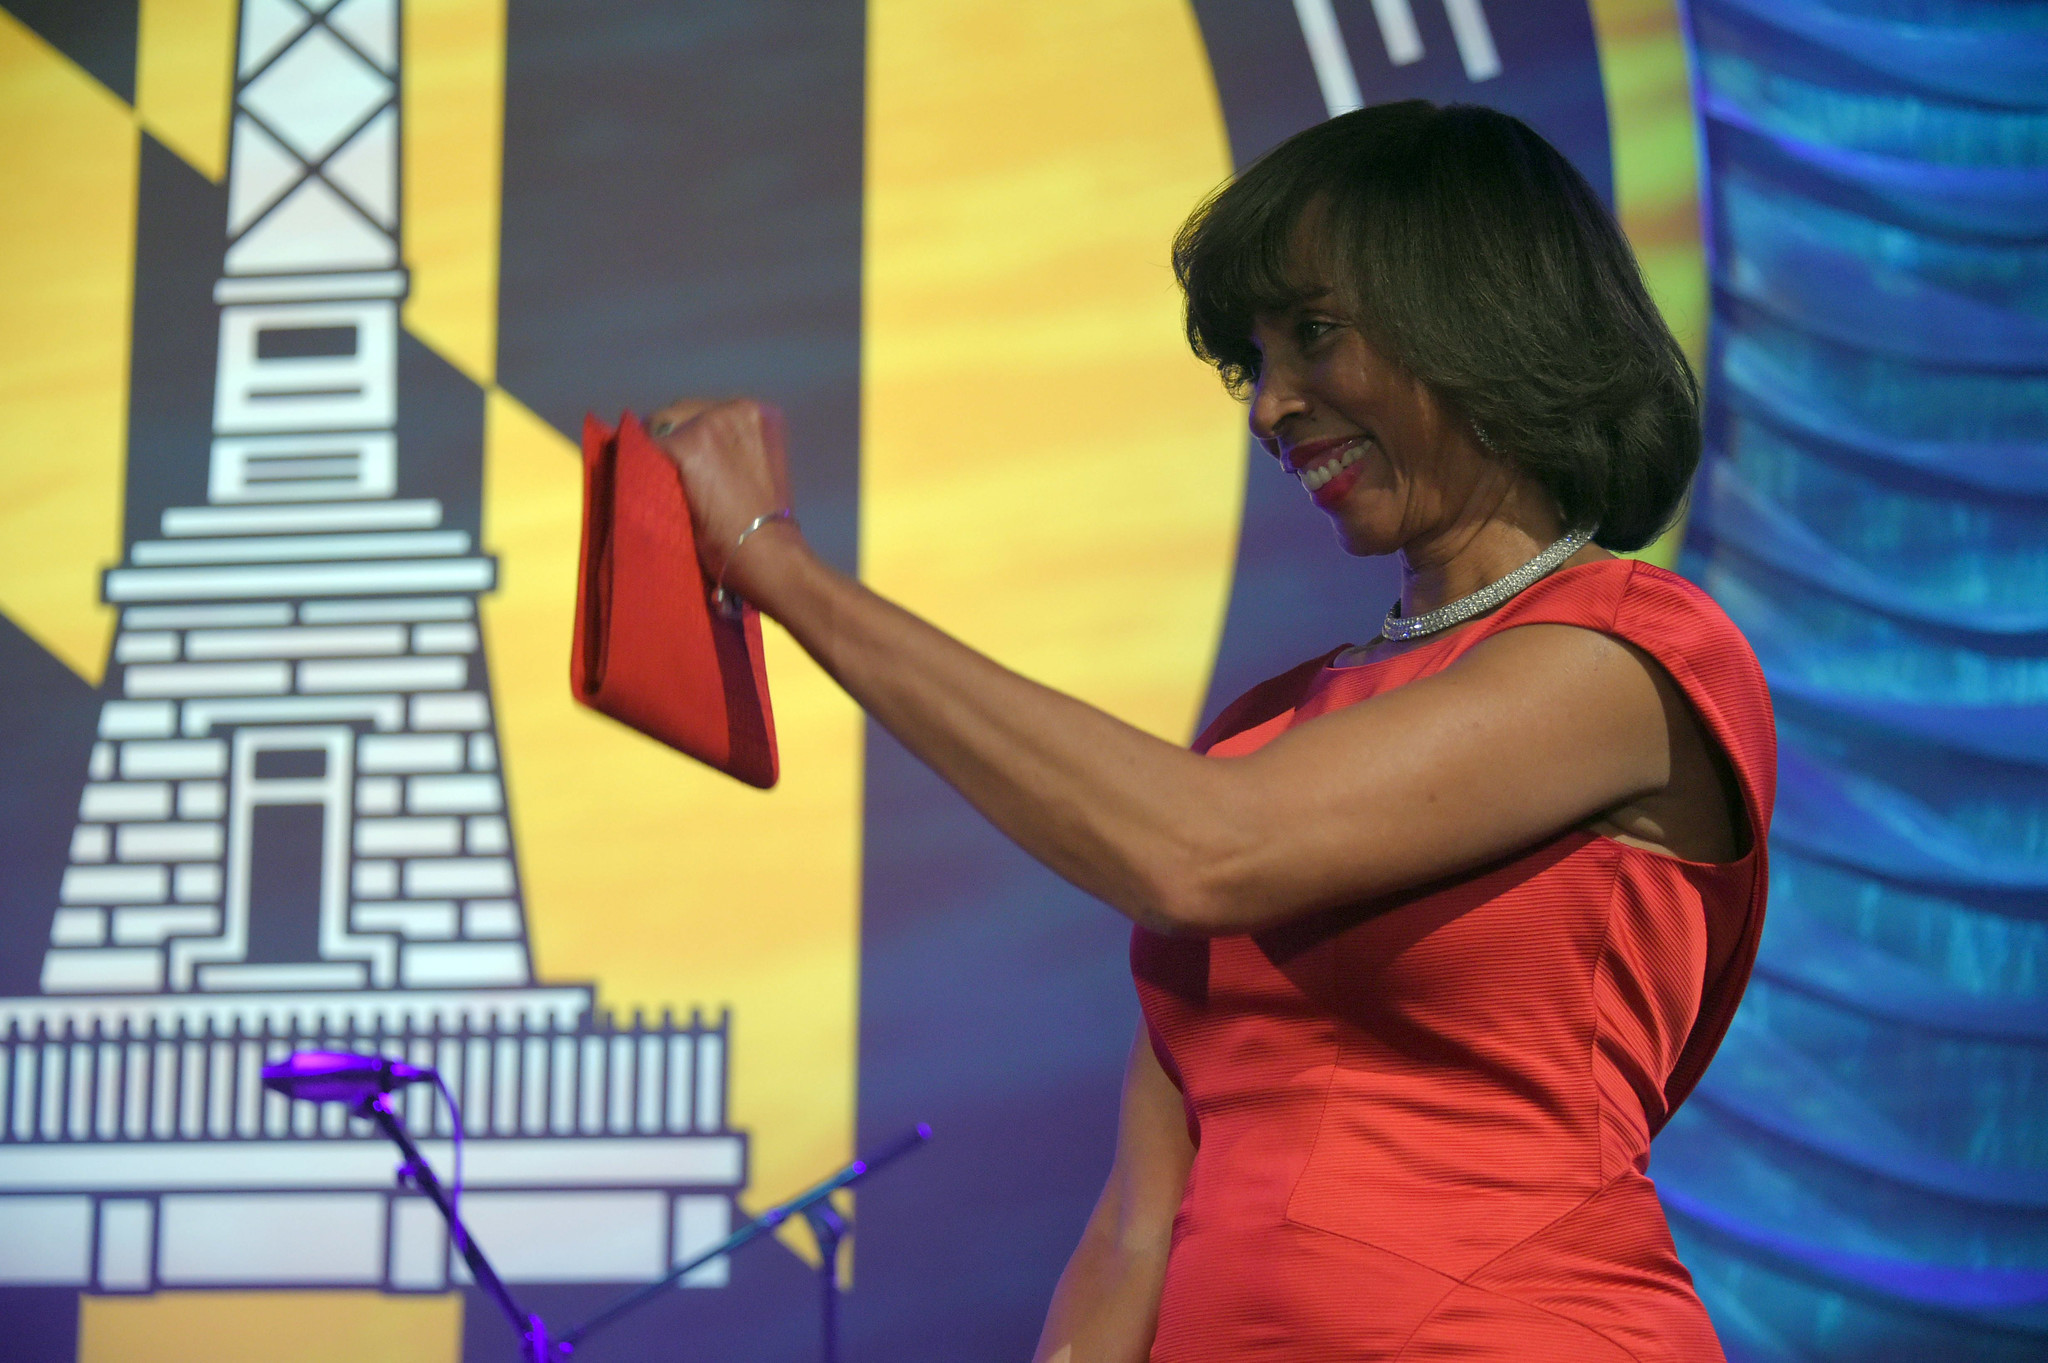 Mayor Catherine Pugh closes inaugural festivities with an ...